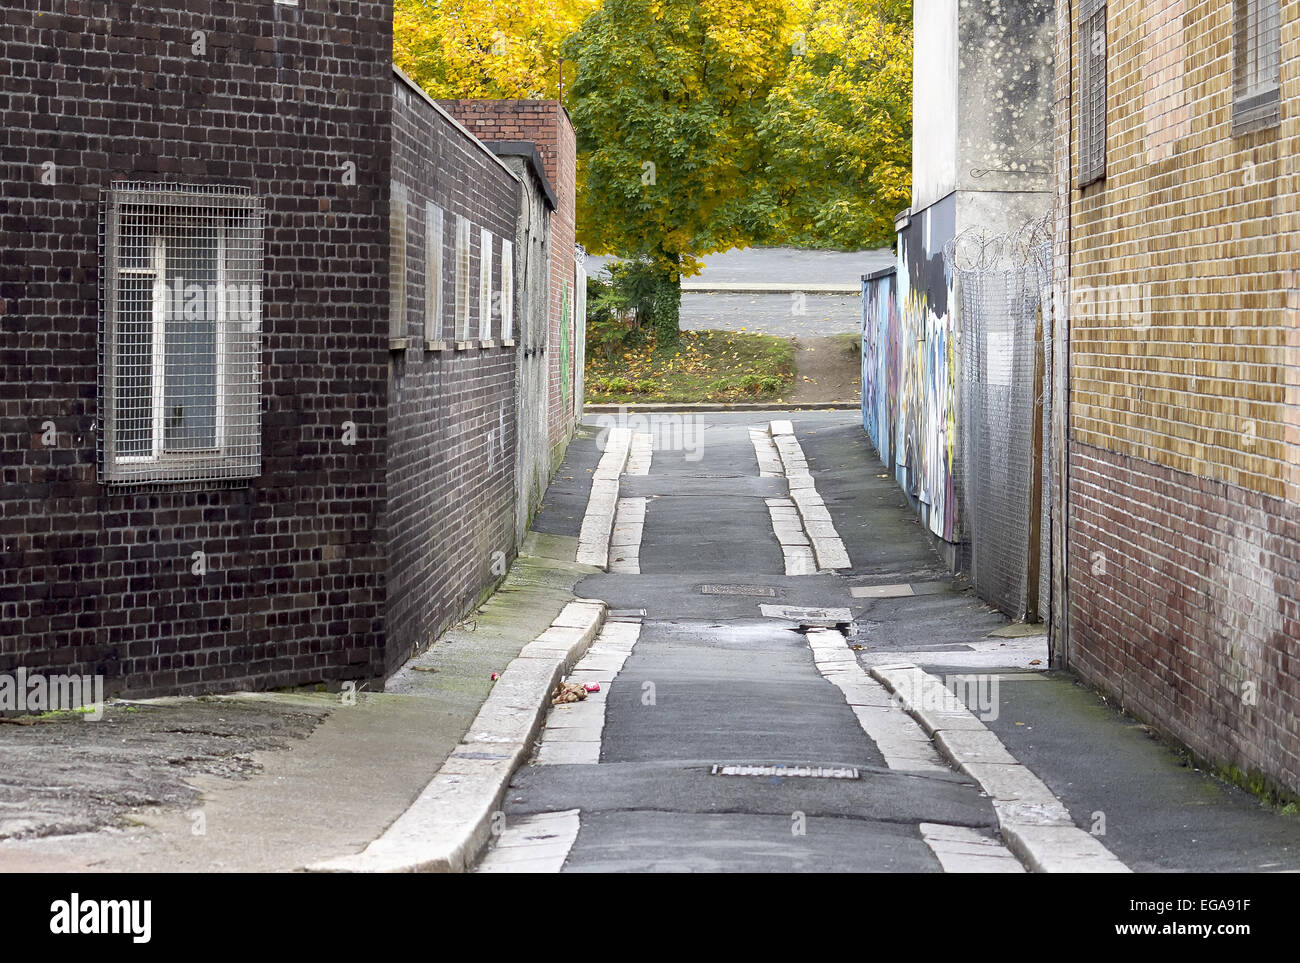 Alley,Rear View,Urban Scene,Abandoned,Absence,Unhygienic,Tree,Autumn,Window,Built Structure,Graffiti,Garbage,Architecture,city - Stock Image